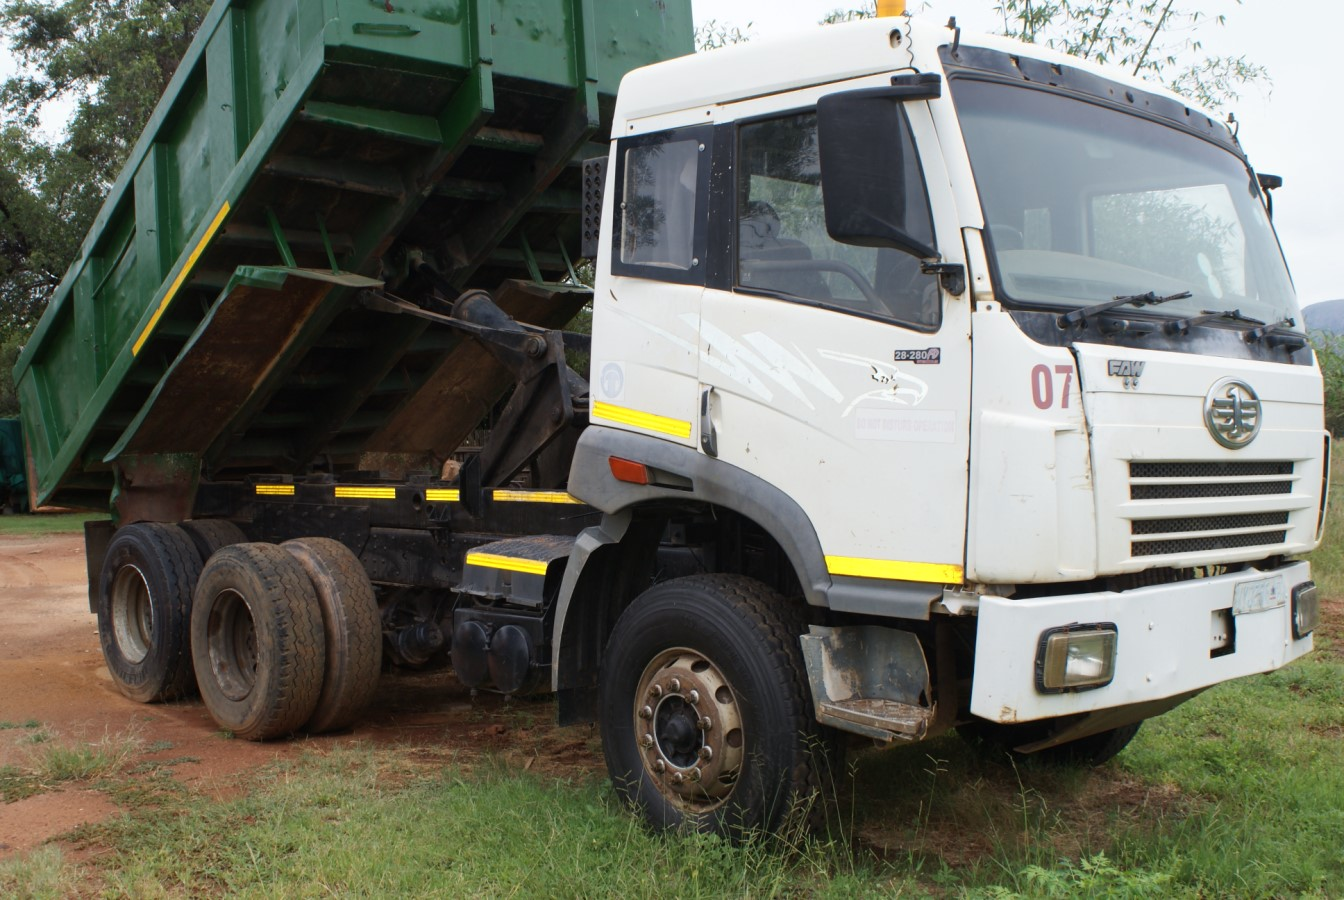 2007 FAW 10 meter tipper truck for sale with current work + one, stripping for spares